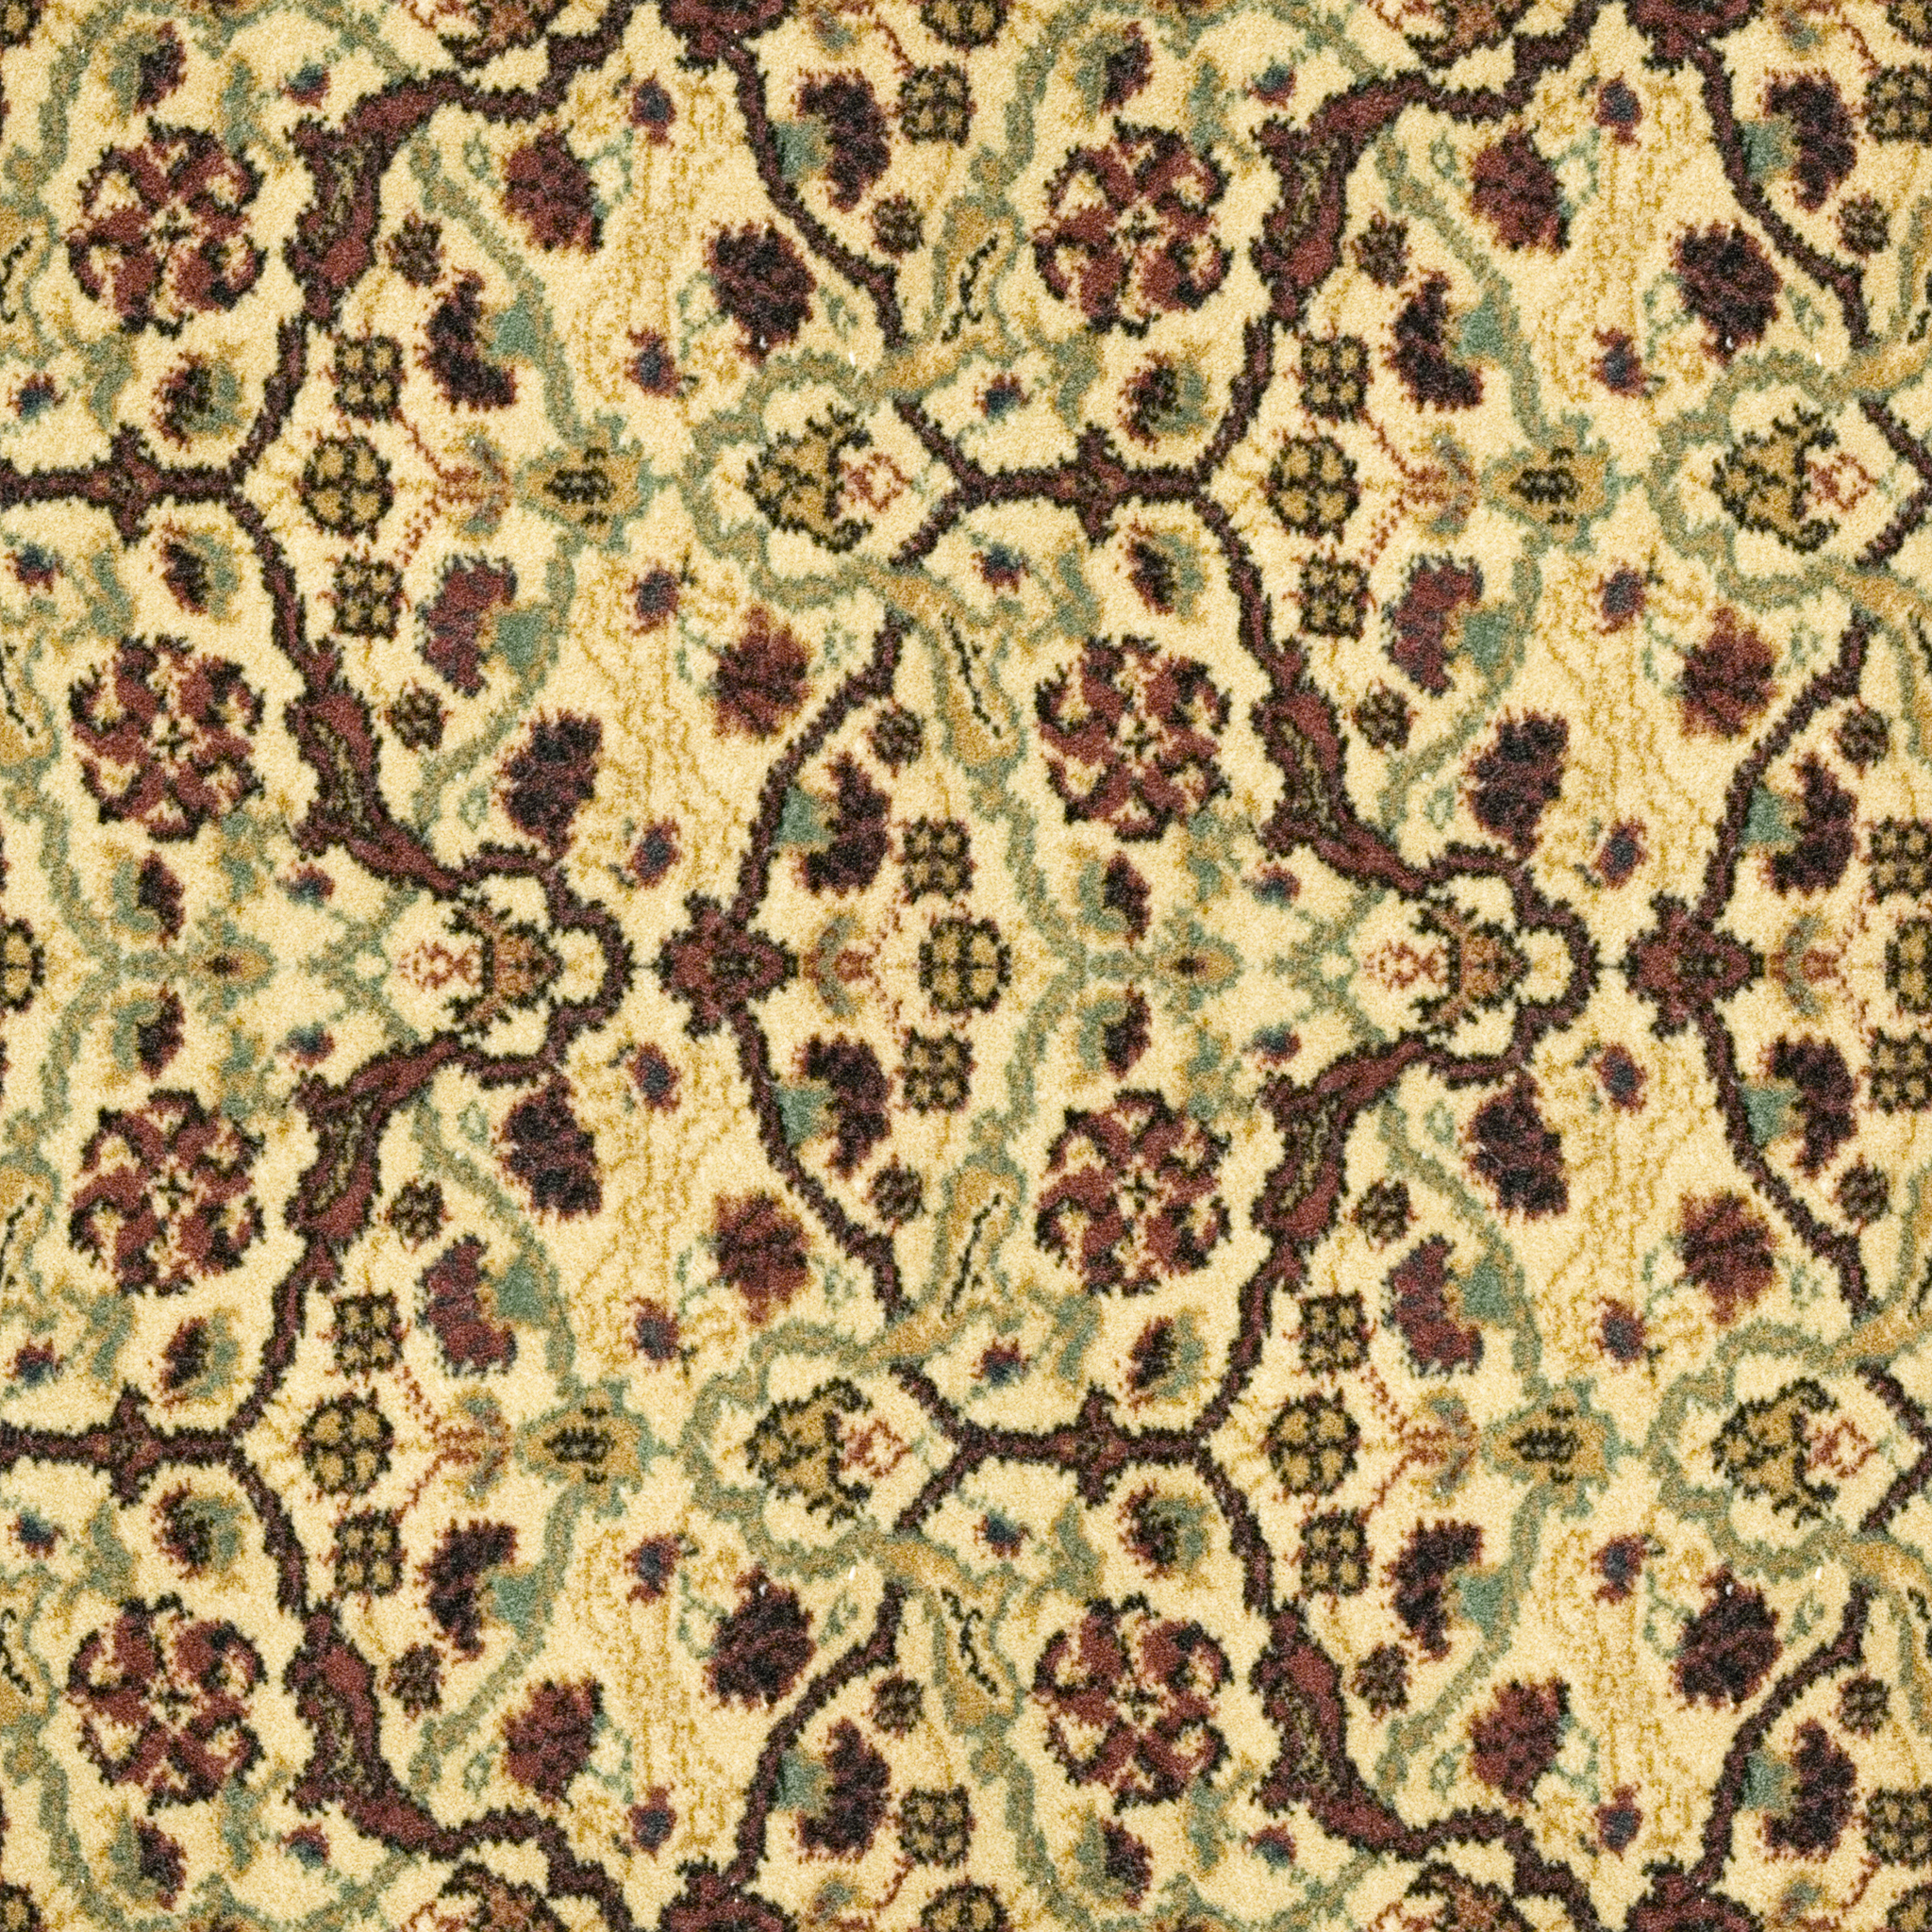 Brown Connections Carpet.jpg